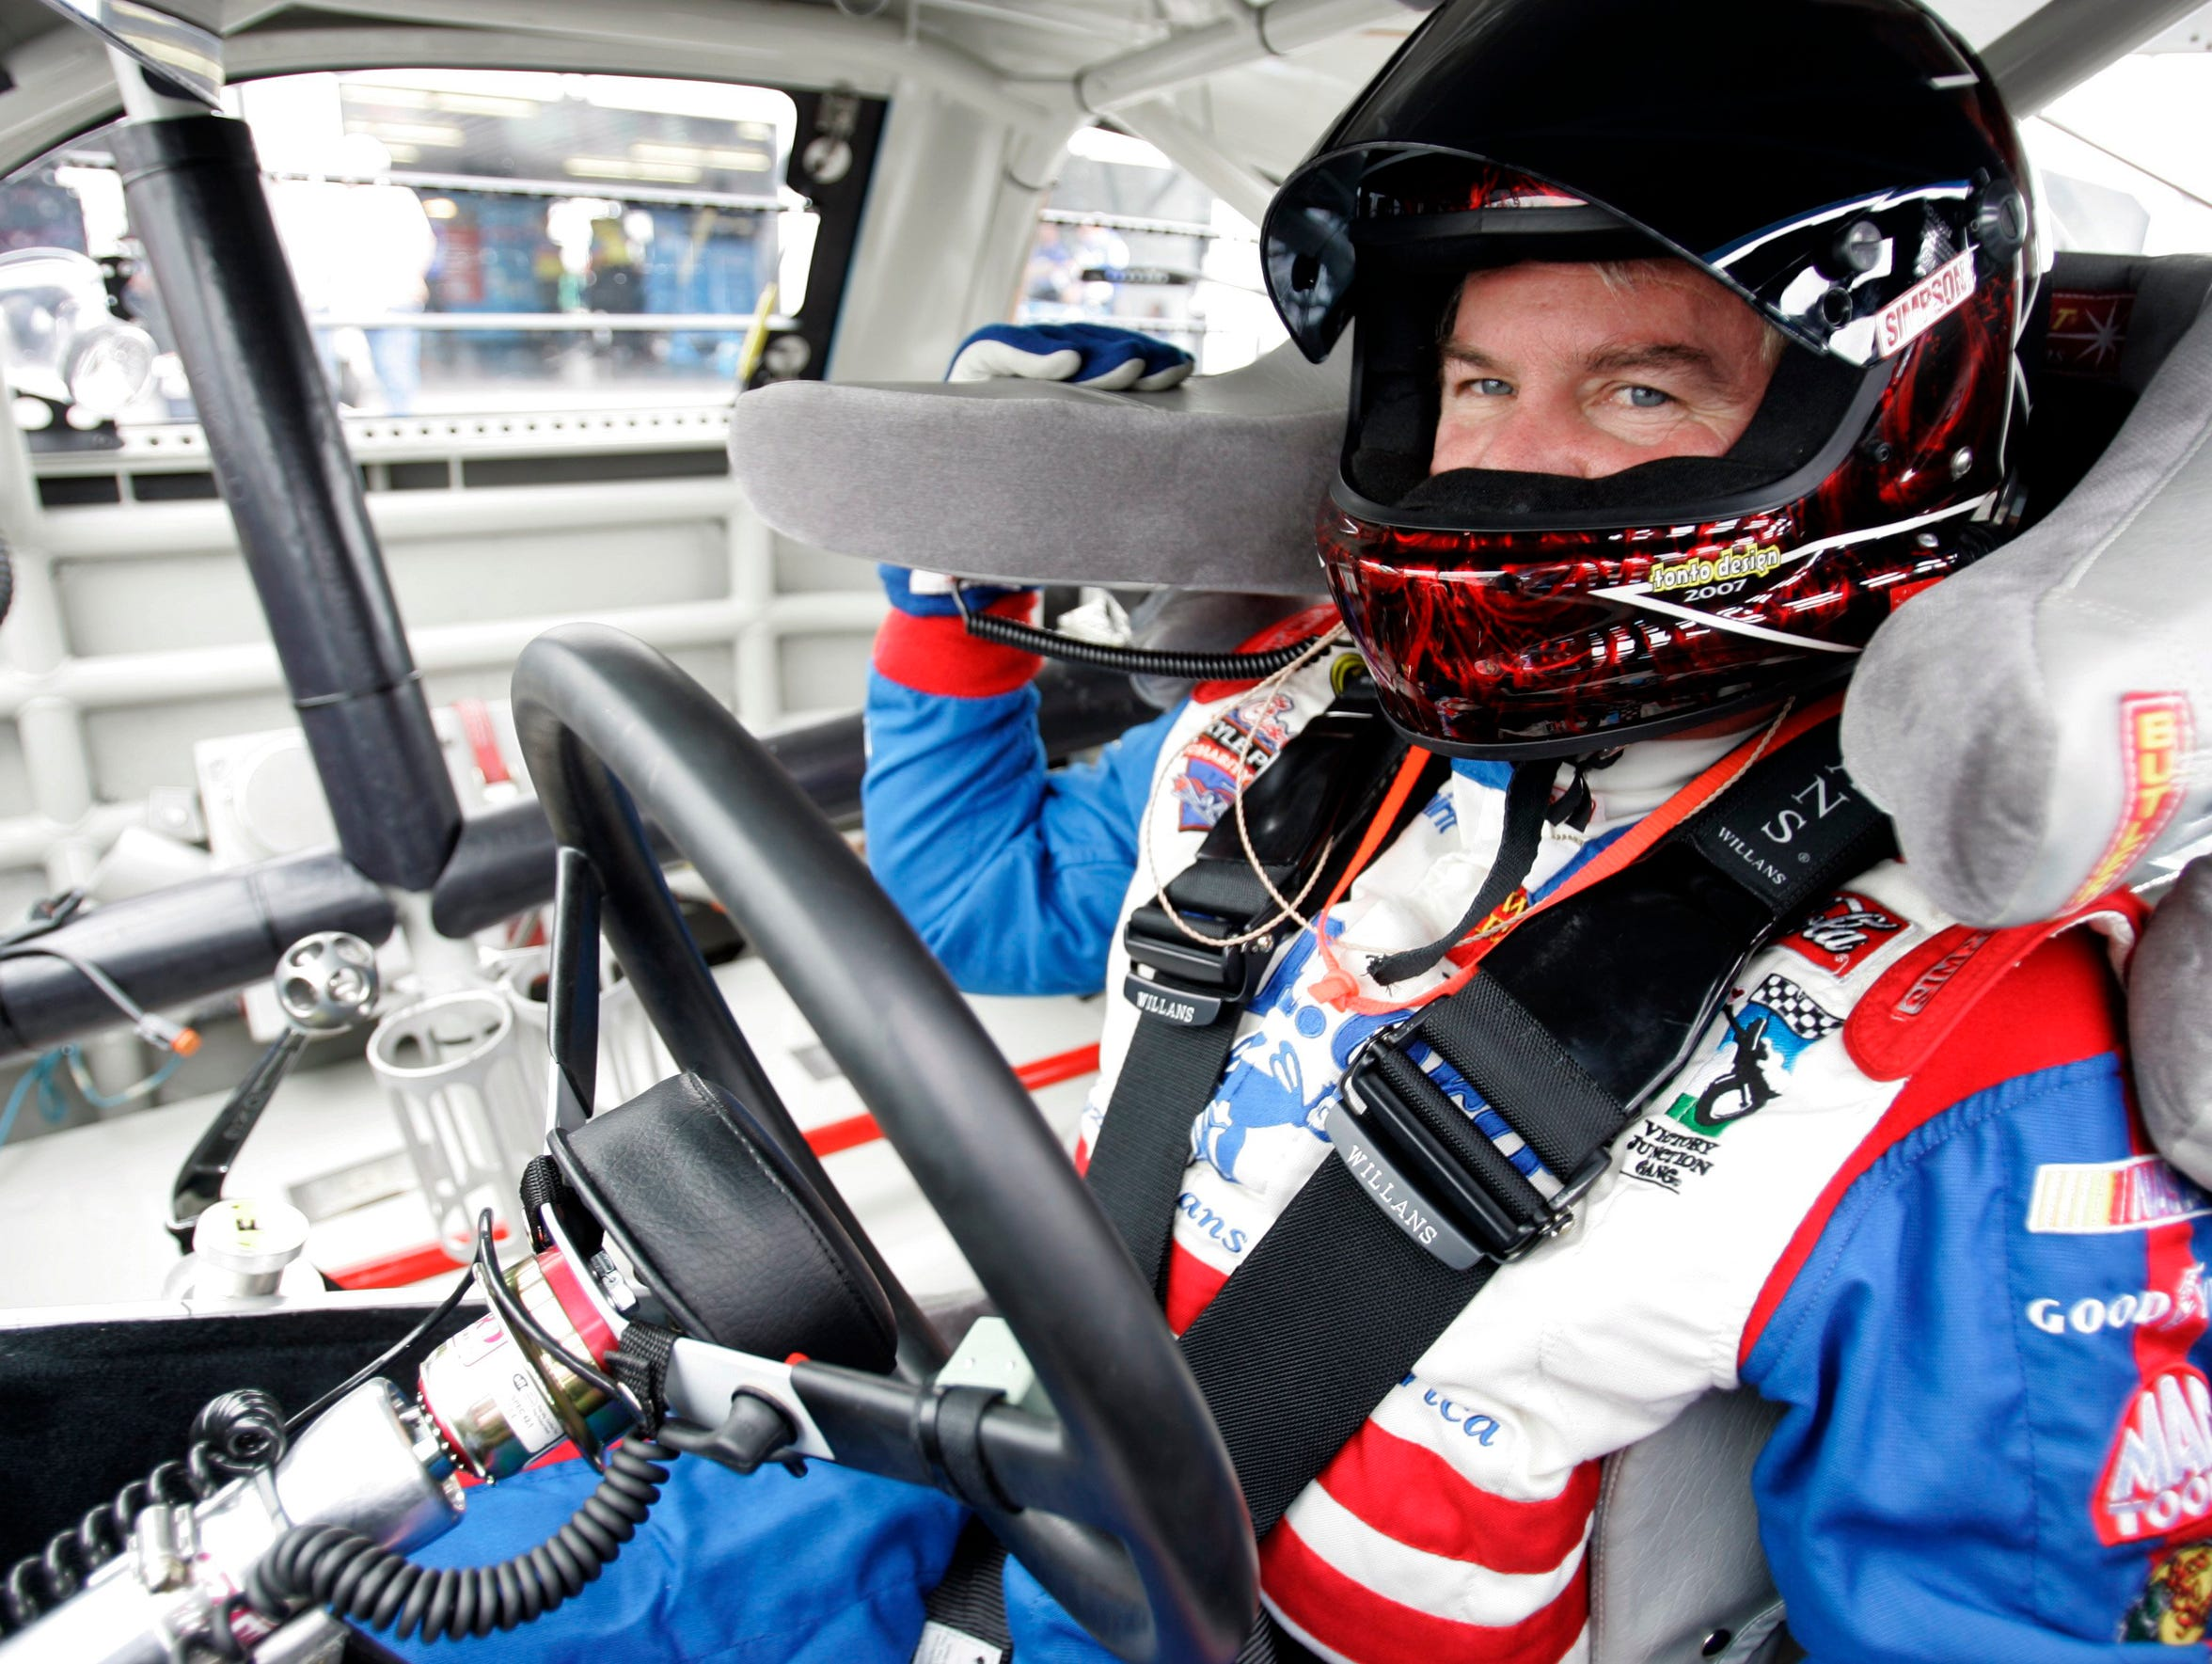 NASCAR driver Terry Labonte waits in his car to go